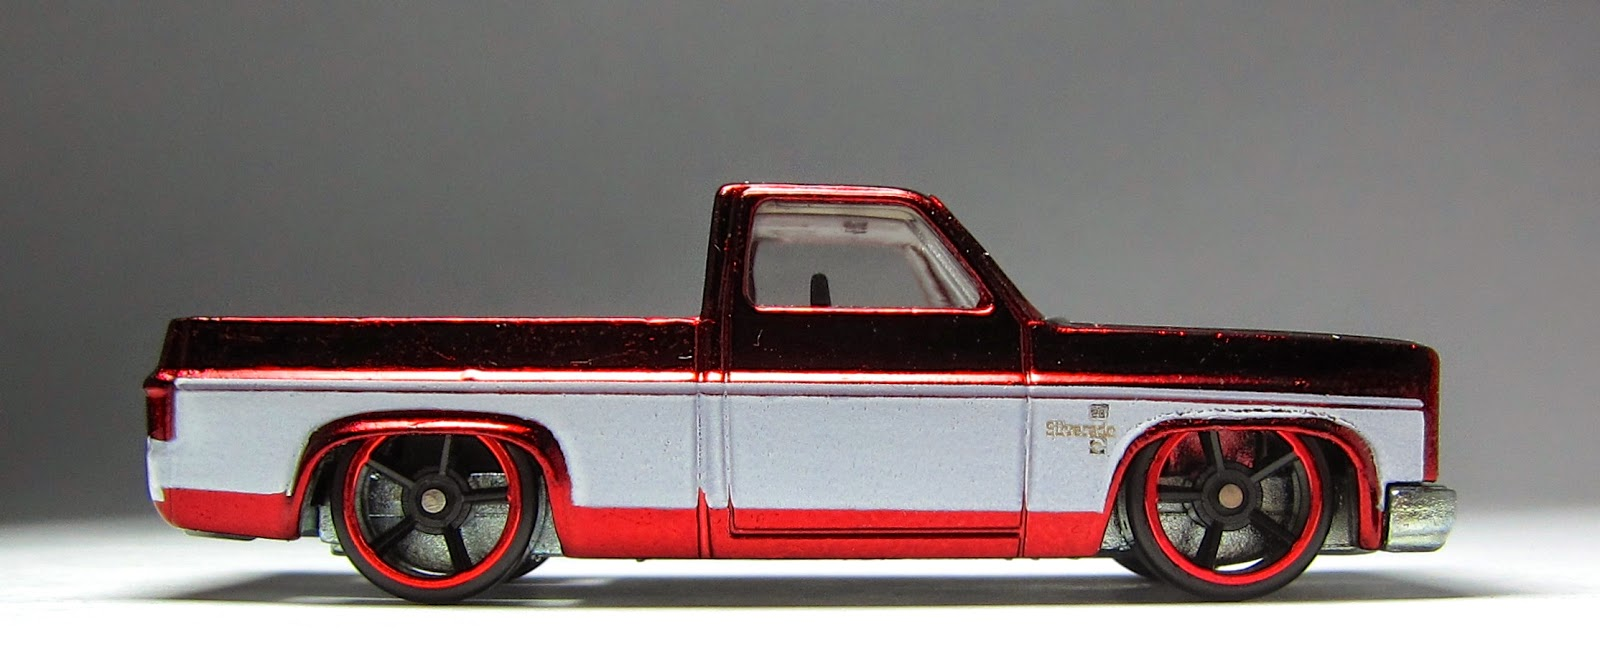 c8eac091ee Cool is Cool is Cool: Hot Wheels '83 Chevy Silverado, Part 2 - Modern  Classics, Police Rods, and other must-haves.